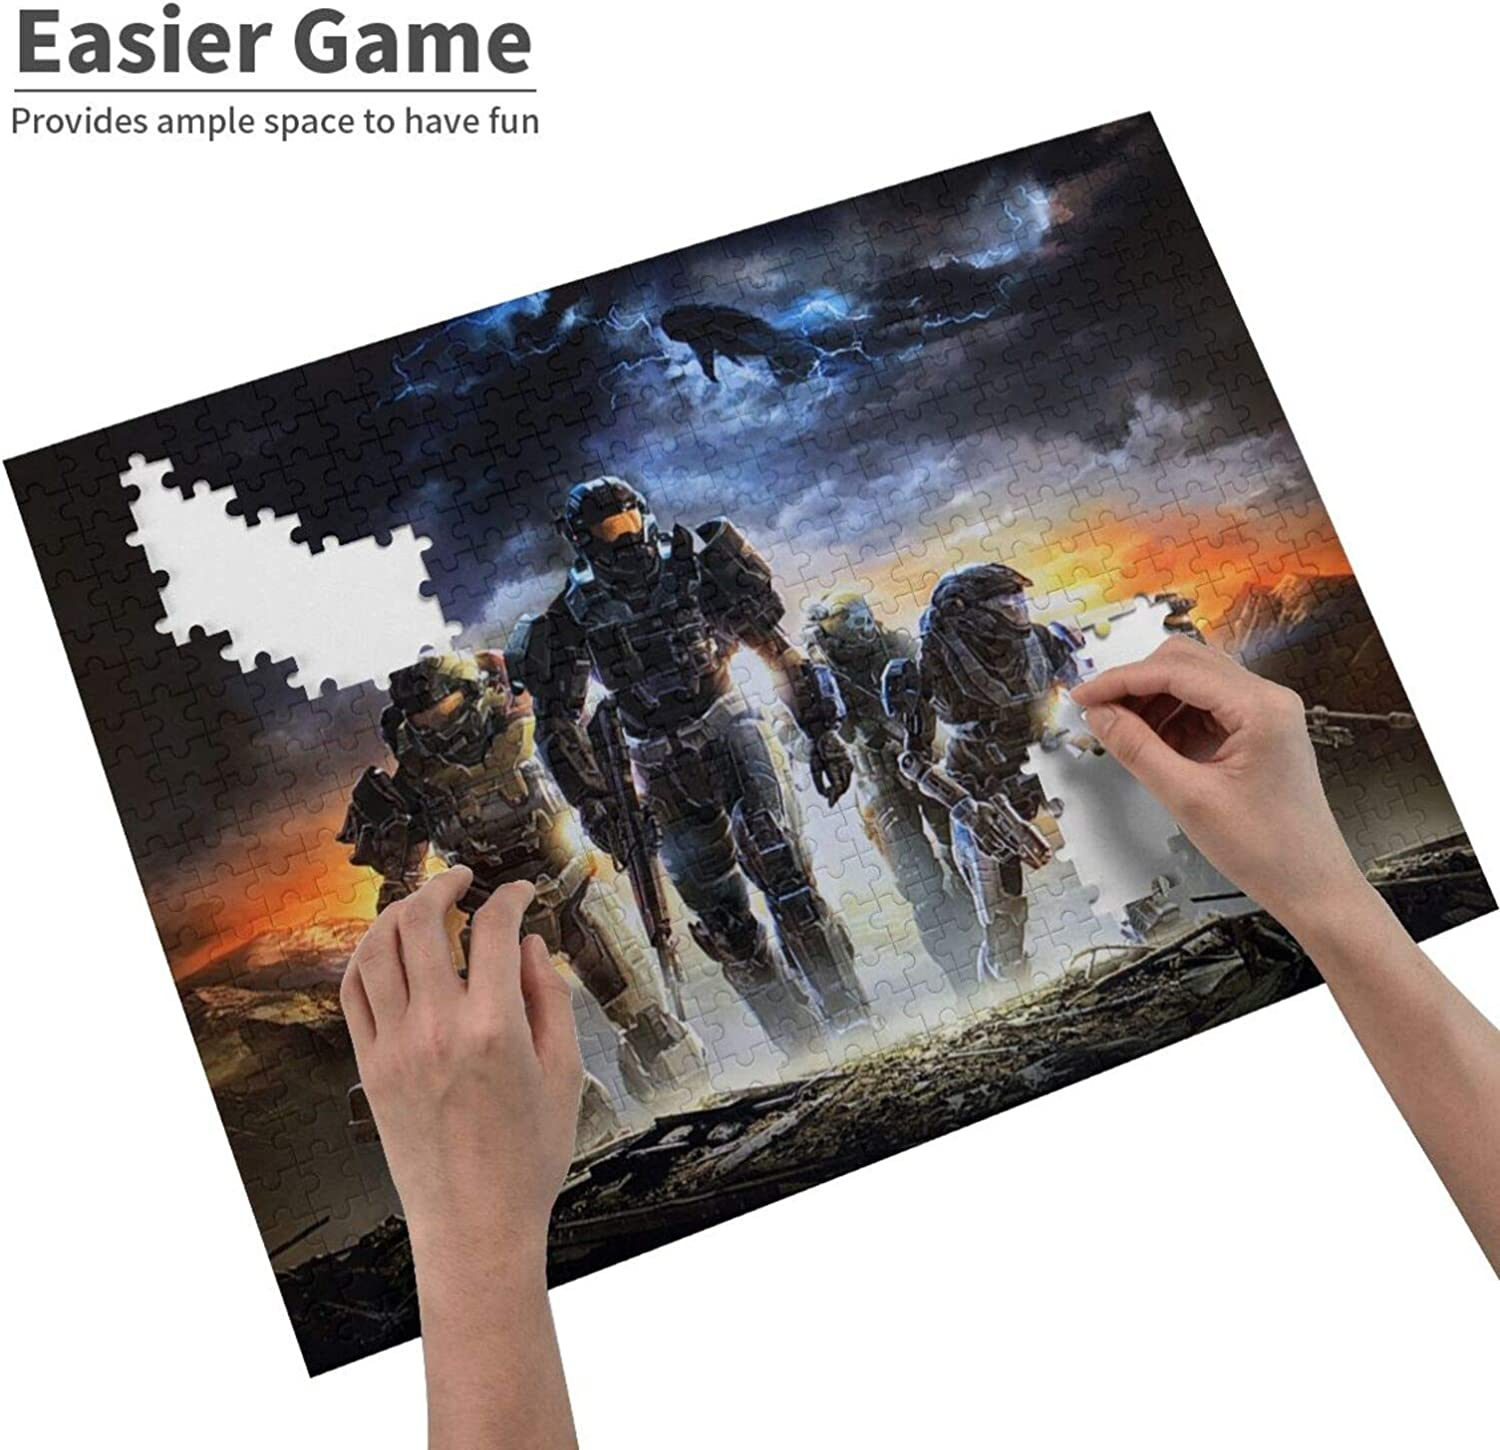 Educational Learning Fun Puzzle Games EUEYAIADS Buildterial Halo Legendary 500 Piece Jigsaw Puzzles